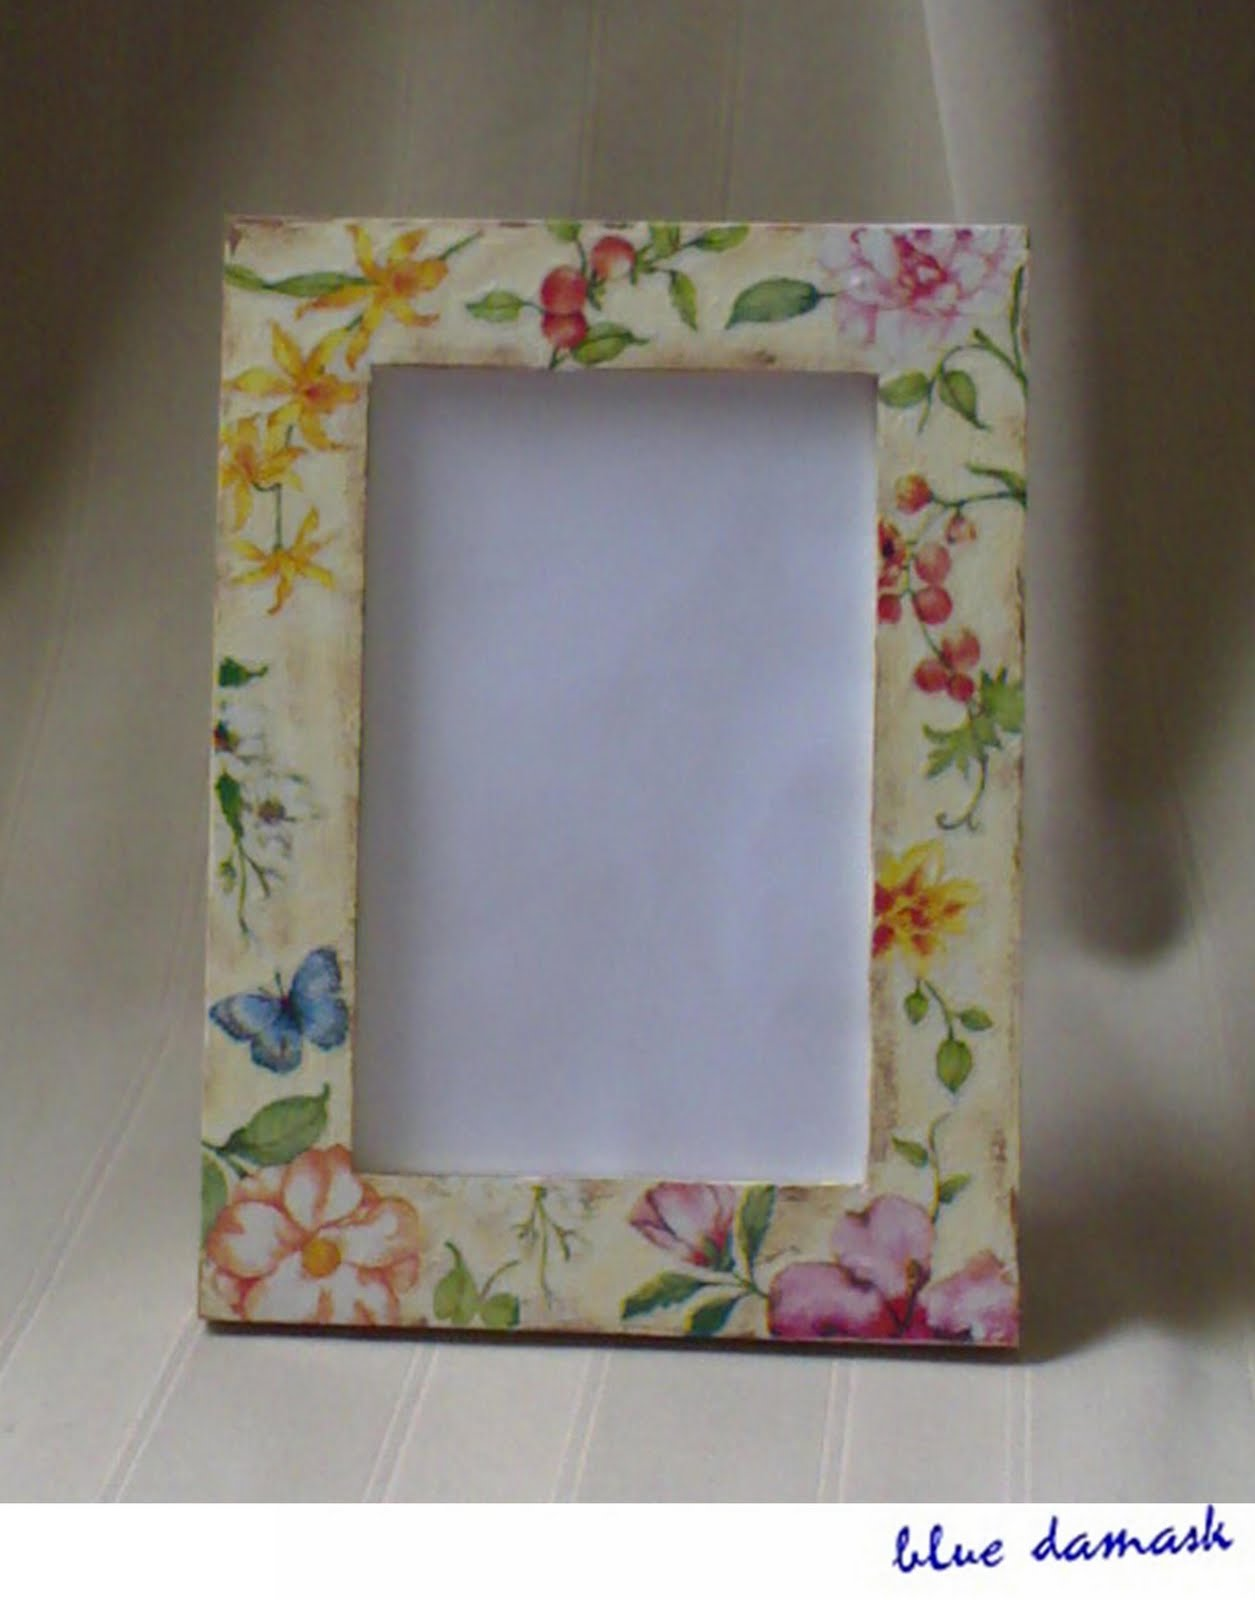 House of blue damask june 2010 decoupage project collette photo frame jeuxipadfo Image collections